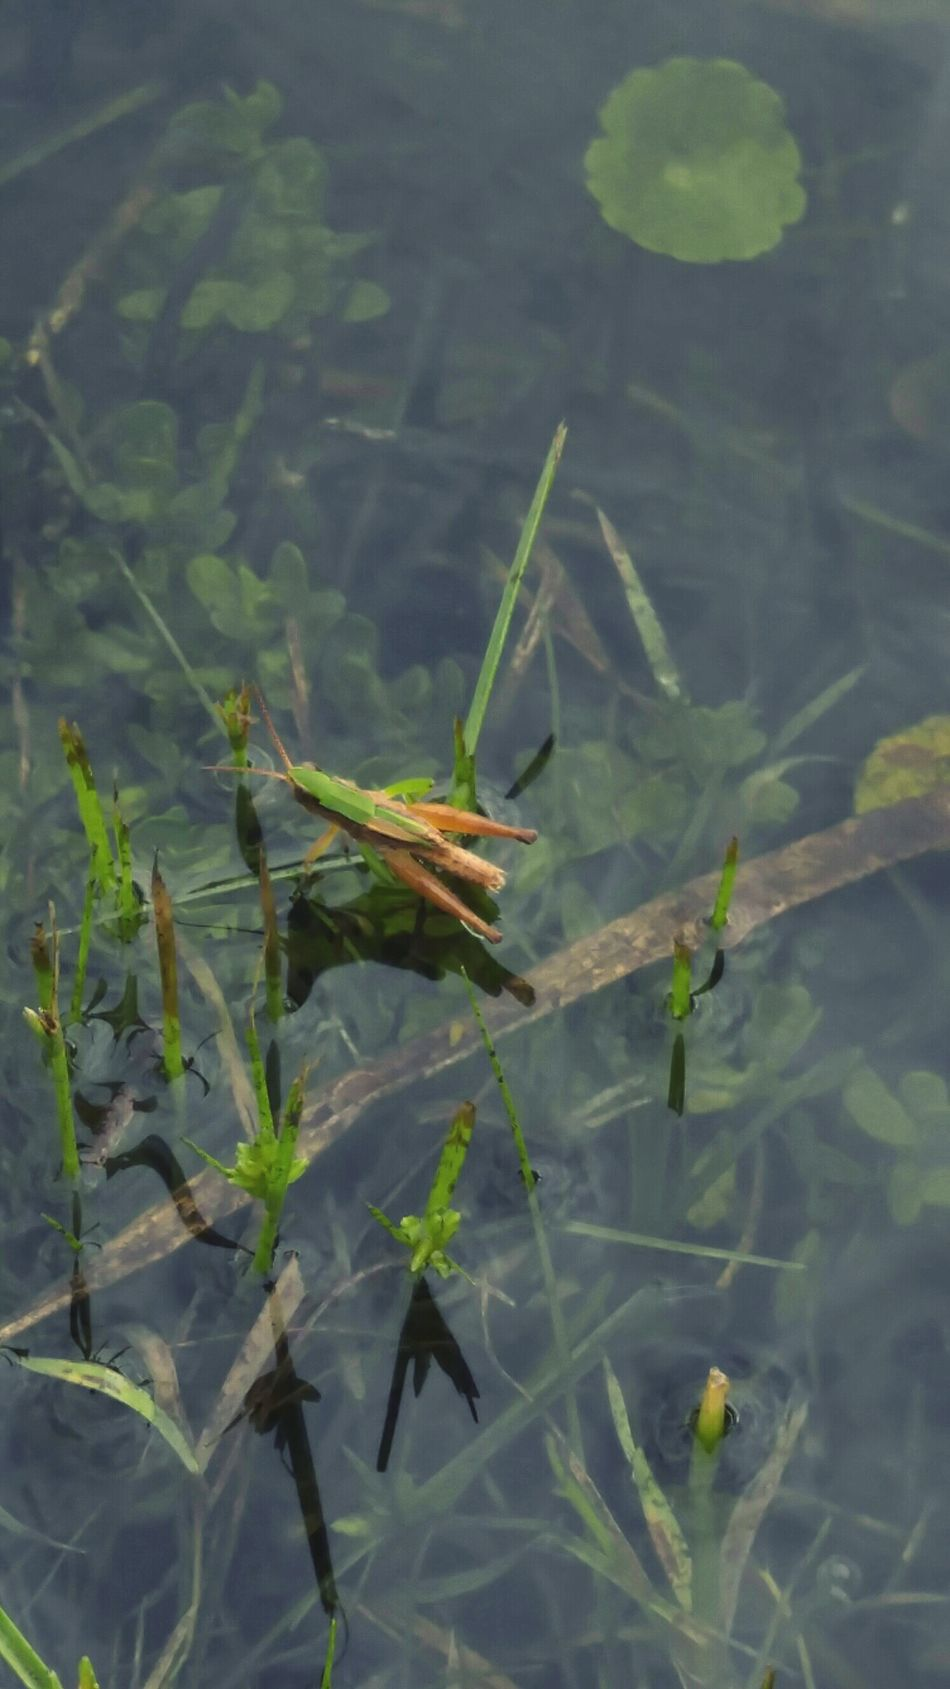 Nature's Diversities Master Of Disguise Camouflaged Insect Aquatic Life Insects Collection Insect Photography Reflection In The Water Reflections And Shadows Aquatic Plants Waterscape By The Lake Tridimensional Perspective